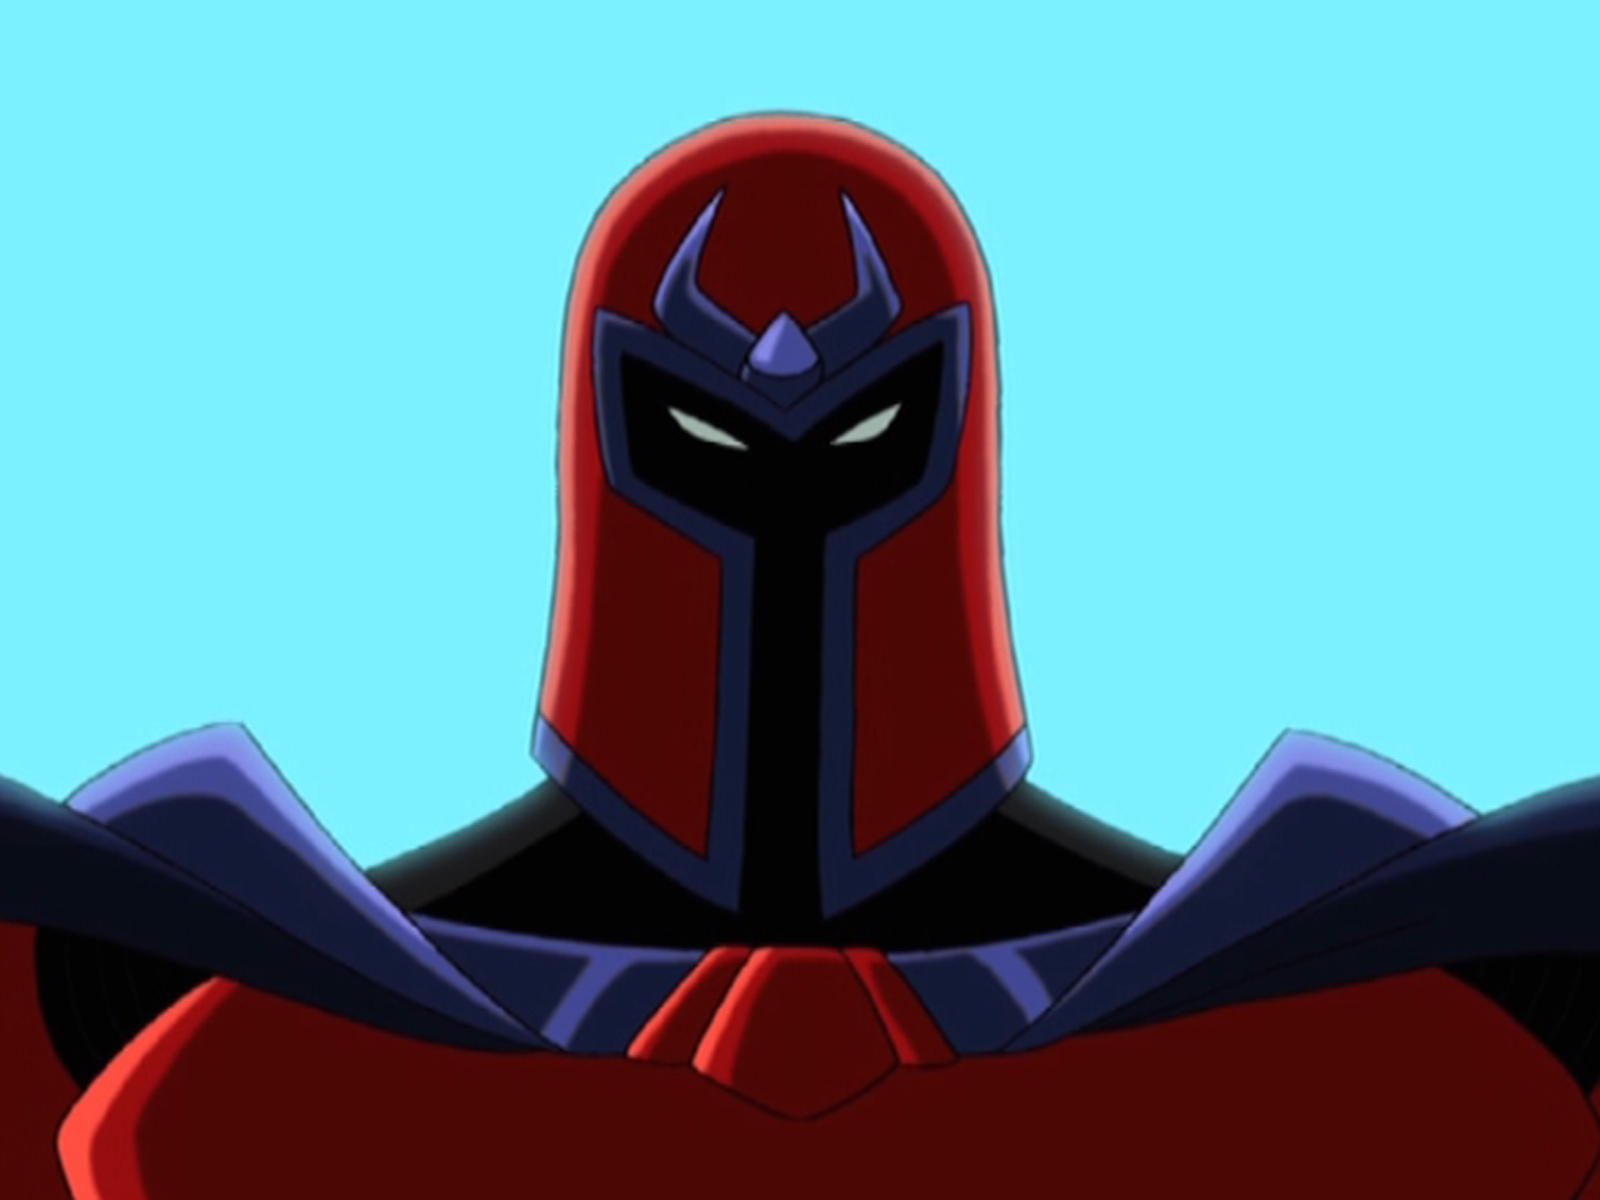 Image - Magneto (X-Men Evolution).jpg - Villains Wiki ...X Men Evolution Villains